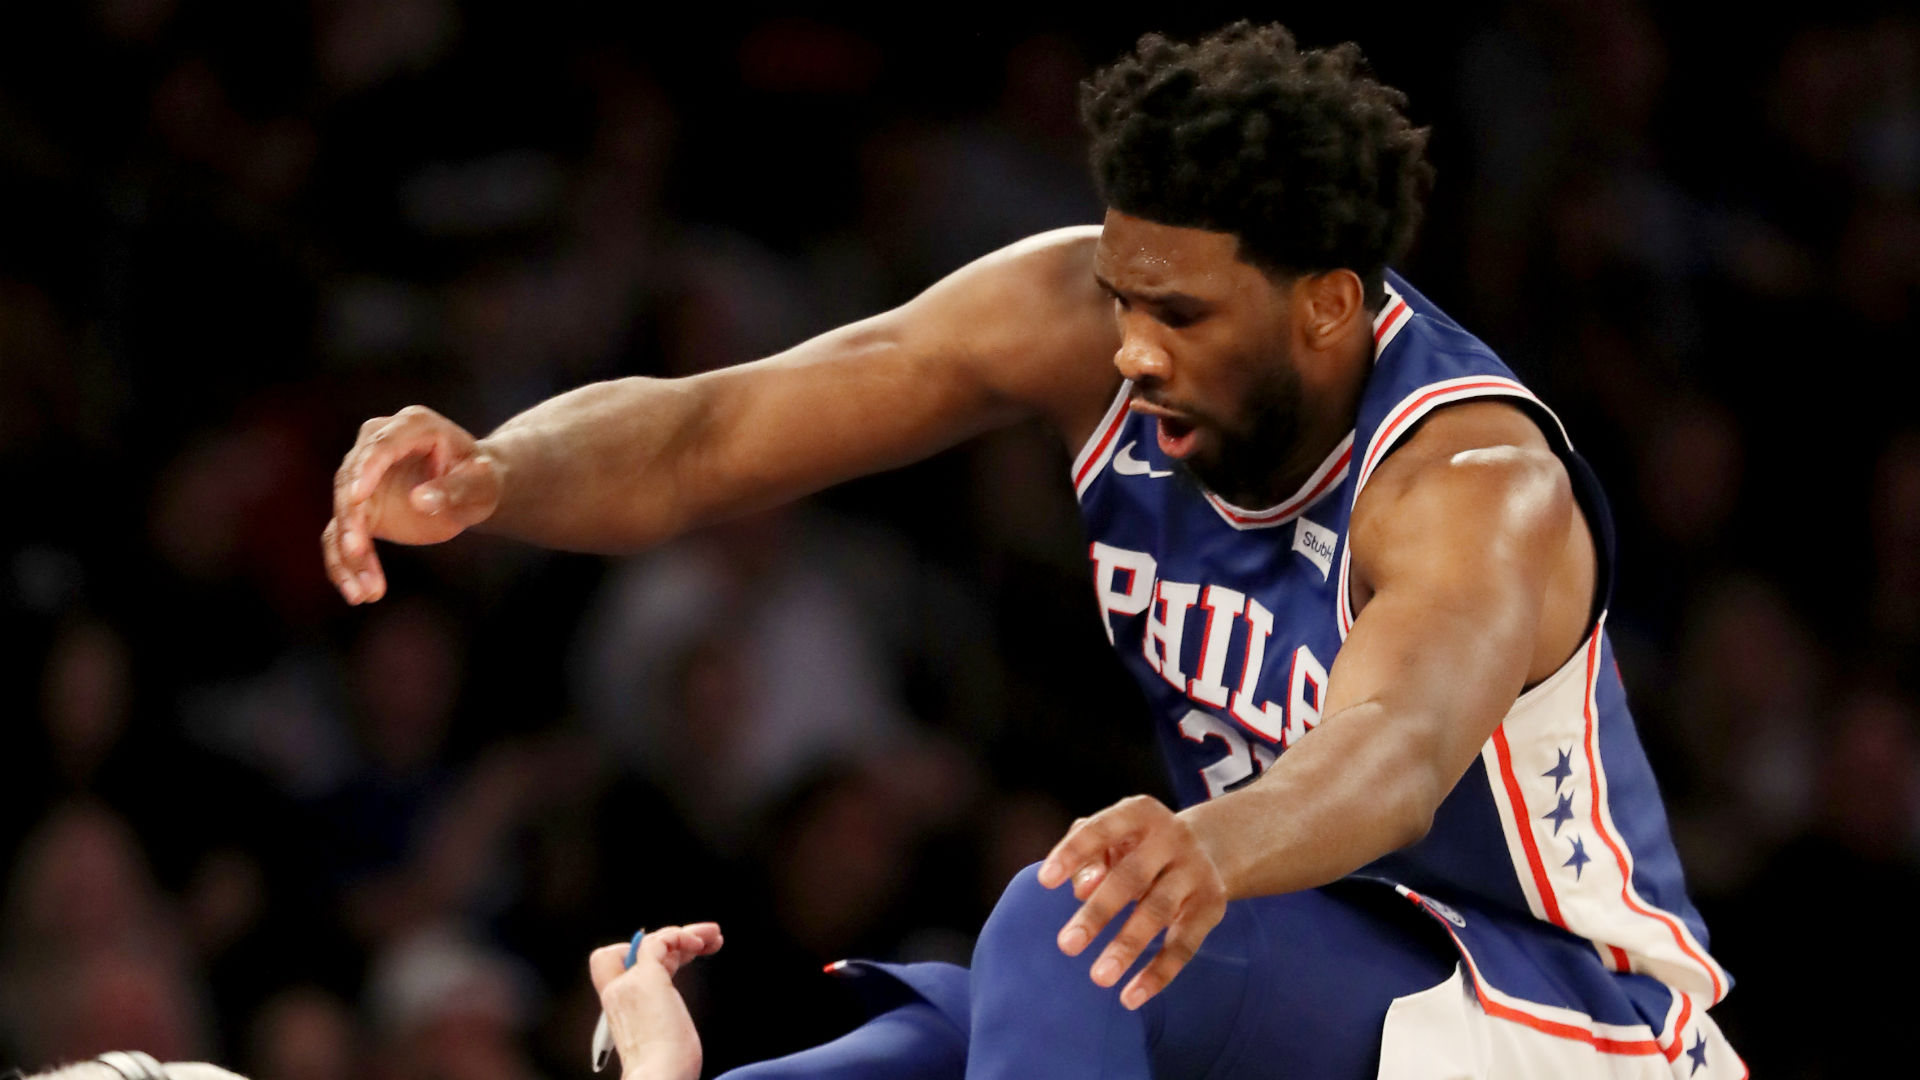 Embiid avoids collision with King